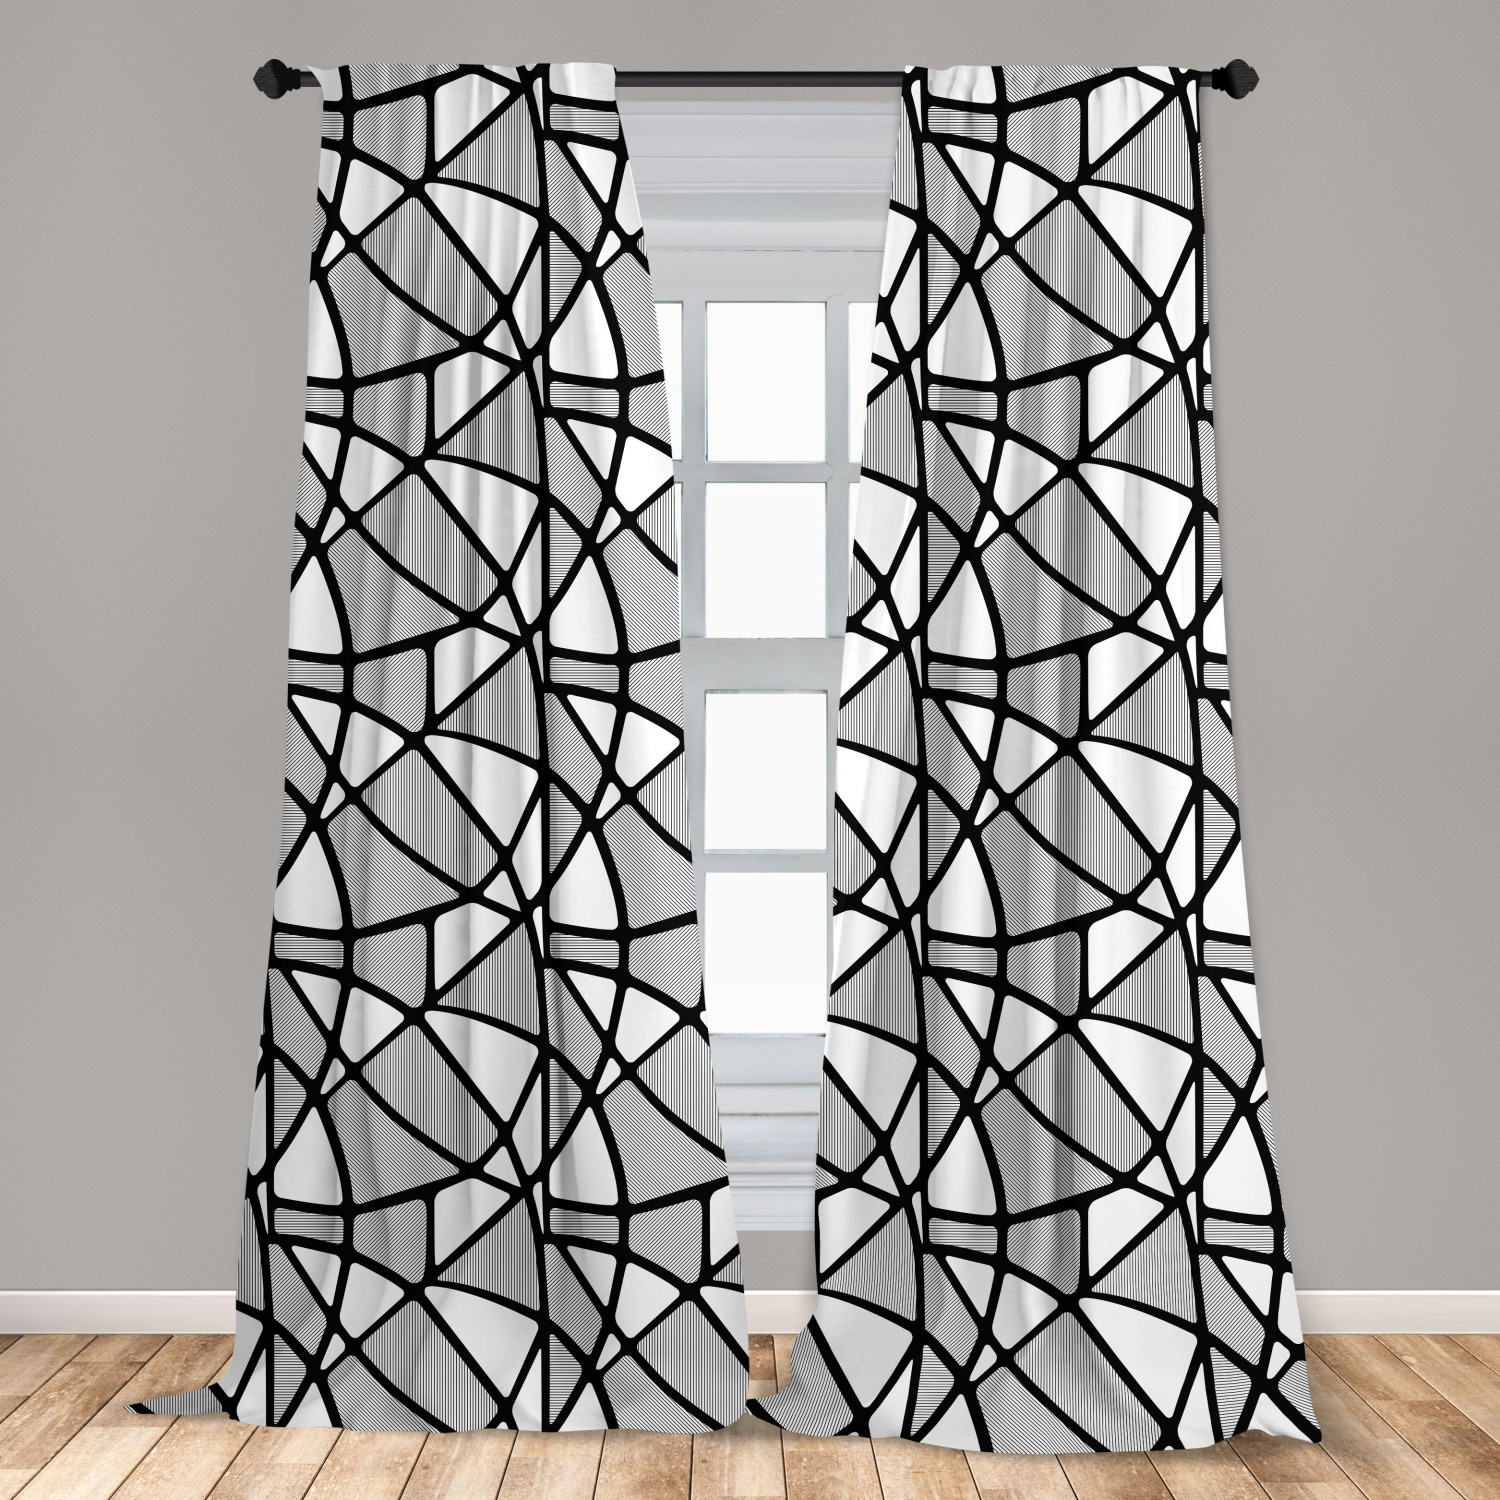 black and white curtains 2 panels set geometrical pattern with abstract design thick and thin lines tile window drapes for living room bedroom